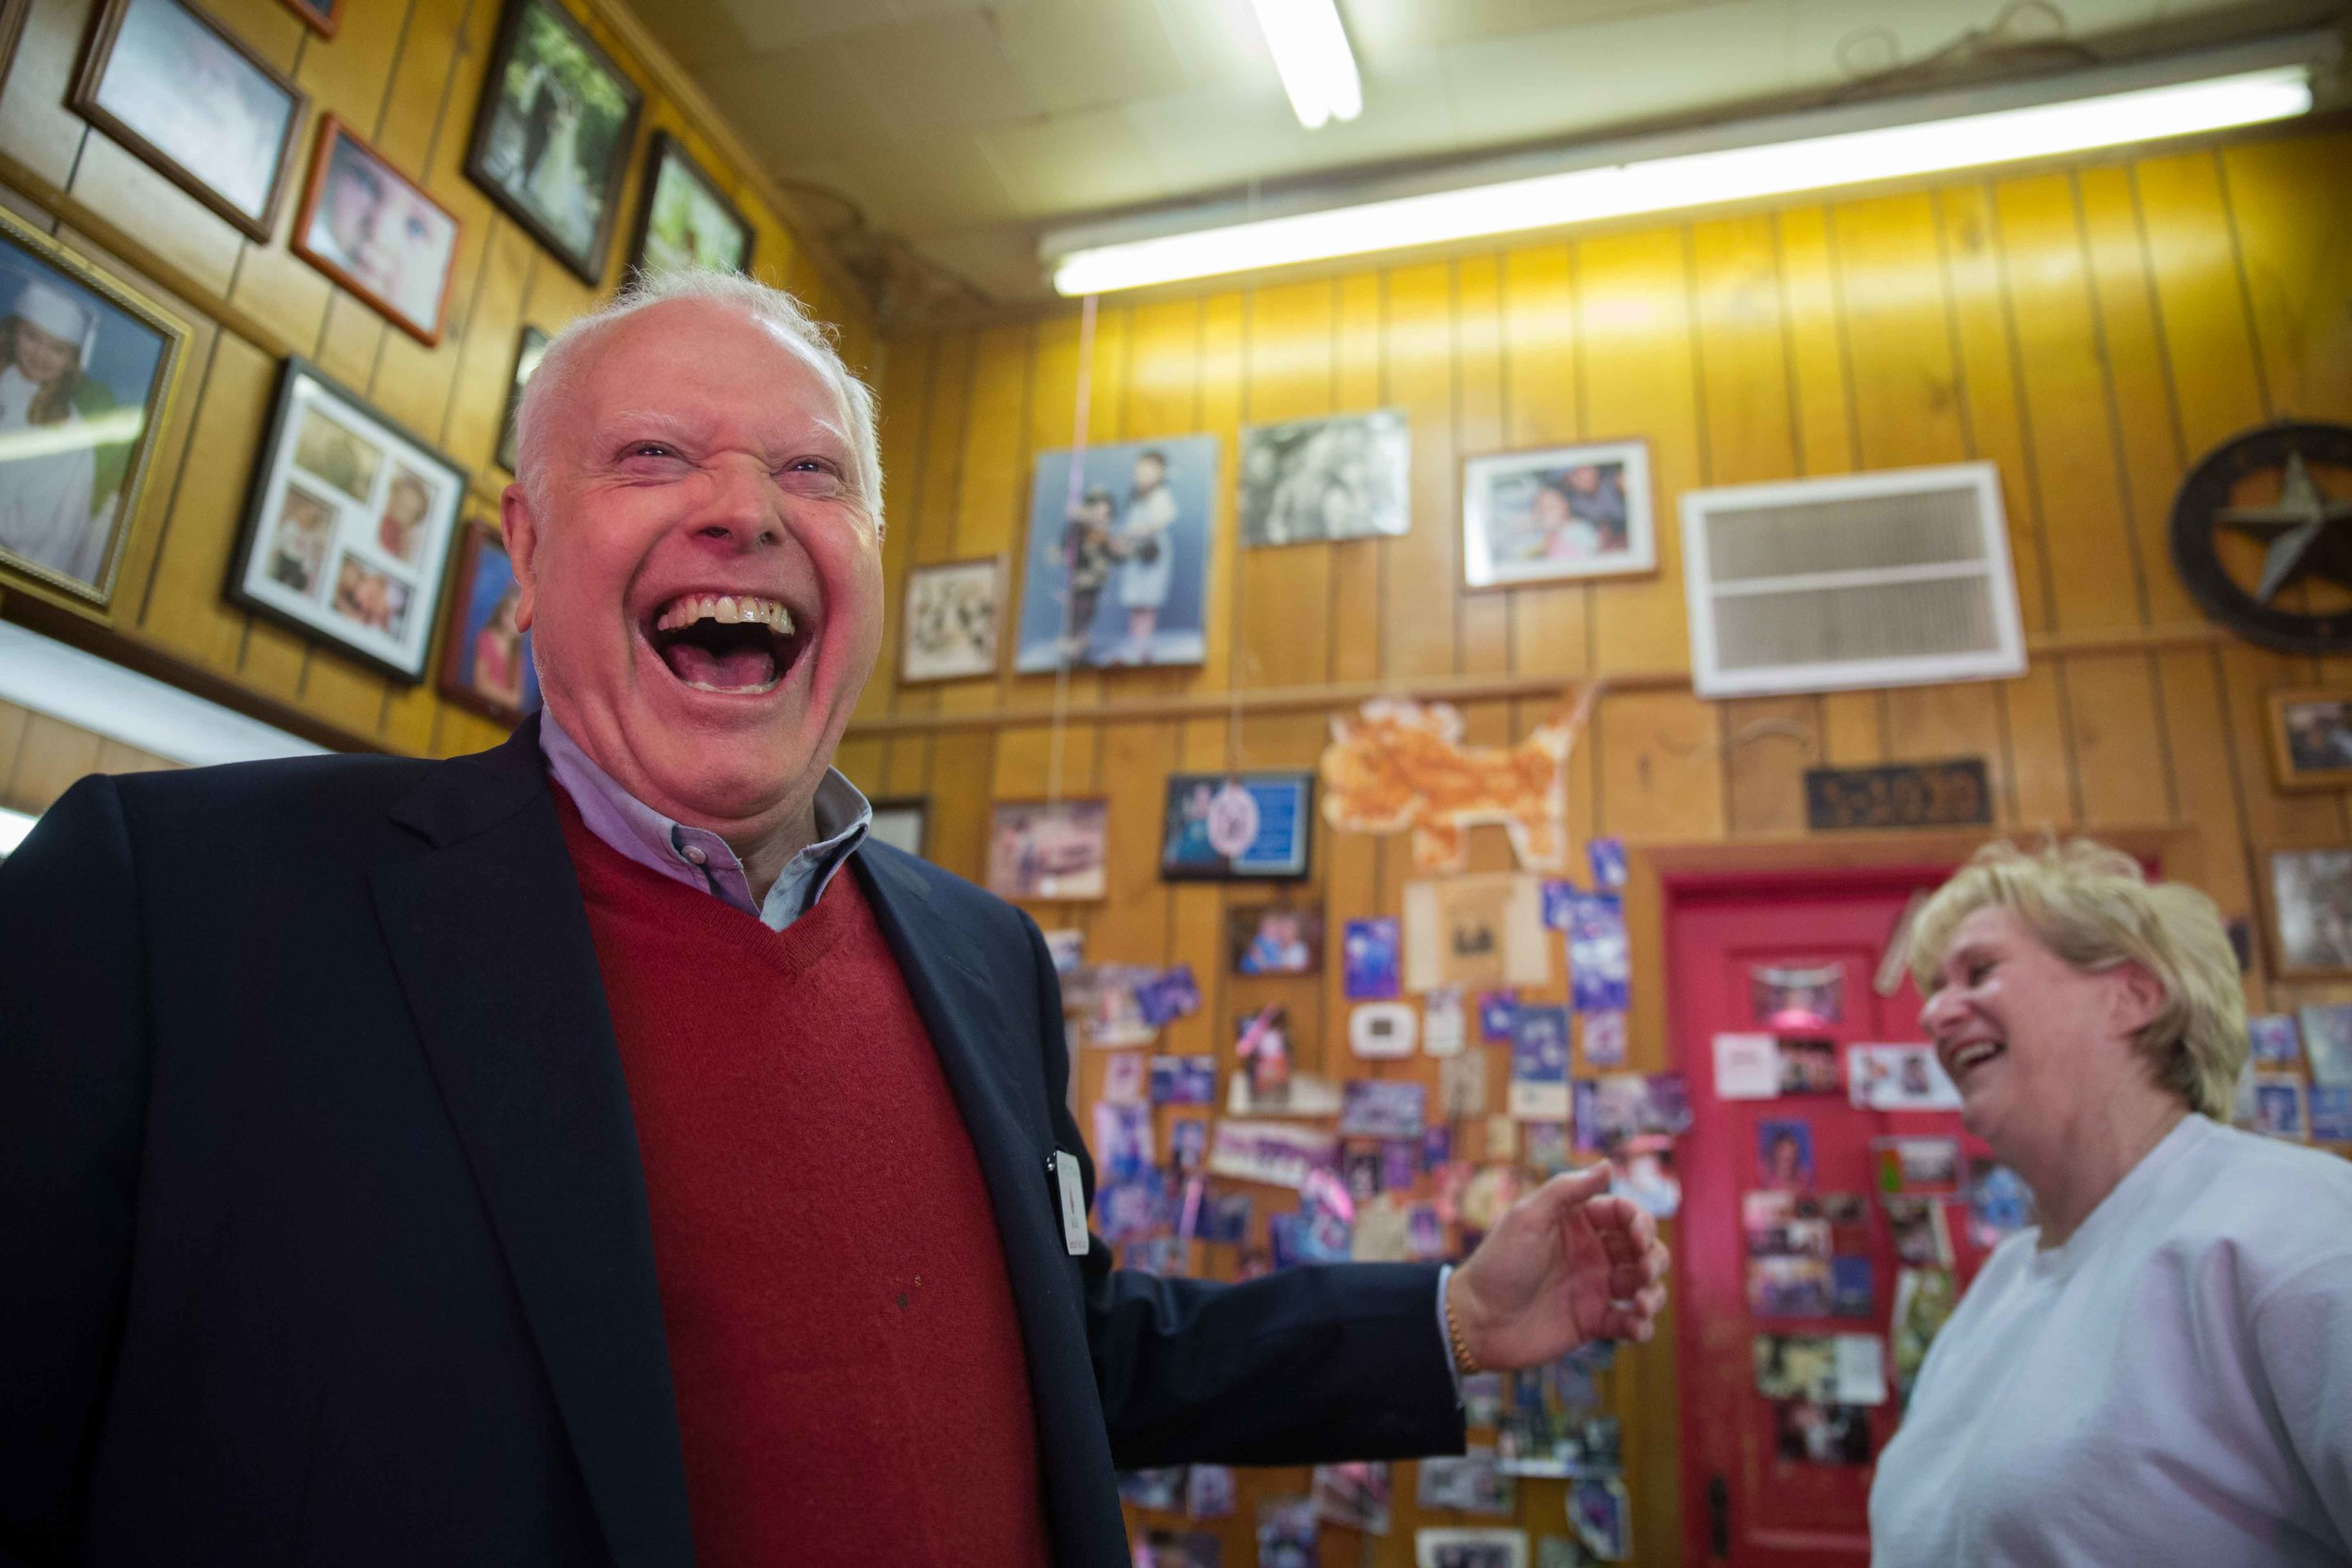 Joe McCutchen, supporter of Republican presidential candidate Ted Cruz, laughs with his barber Marcelle Lowry at City Barber Shop, Saturday, Dec. 5, 2015, in Ellijay, Ga. BRANDEN CAMP FOR THE BOSTON GLOBE